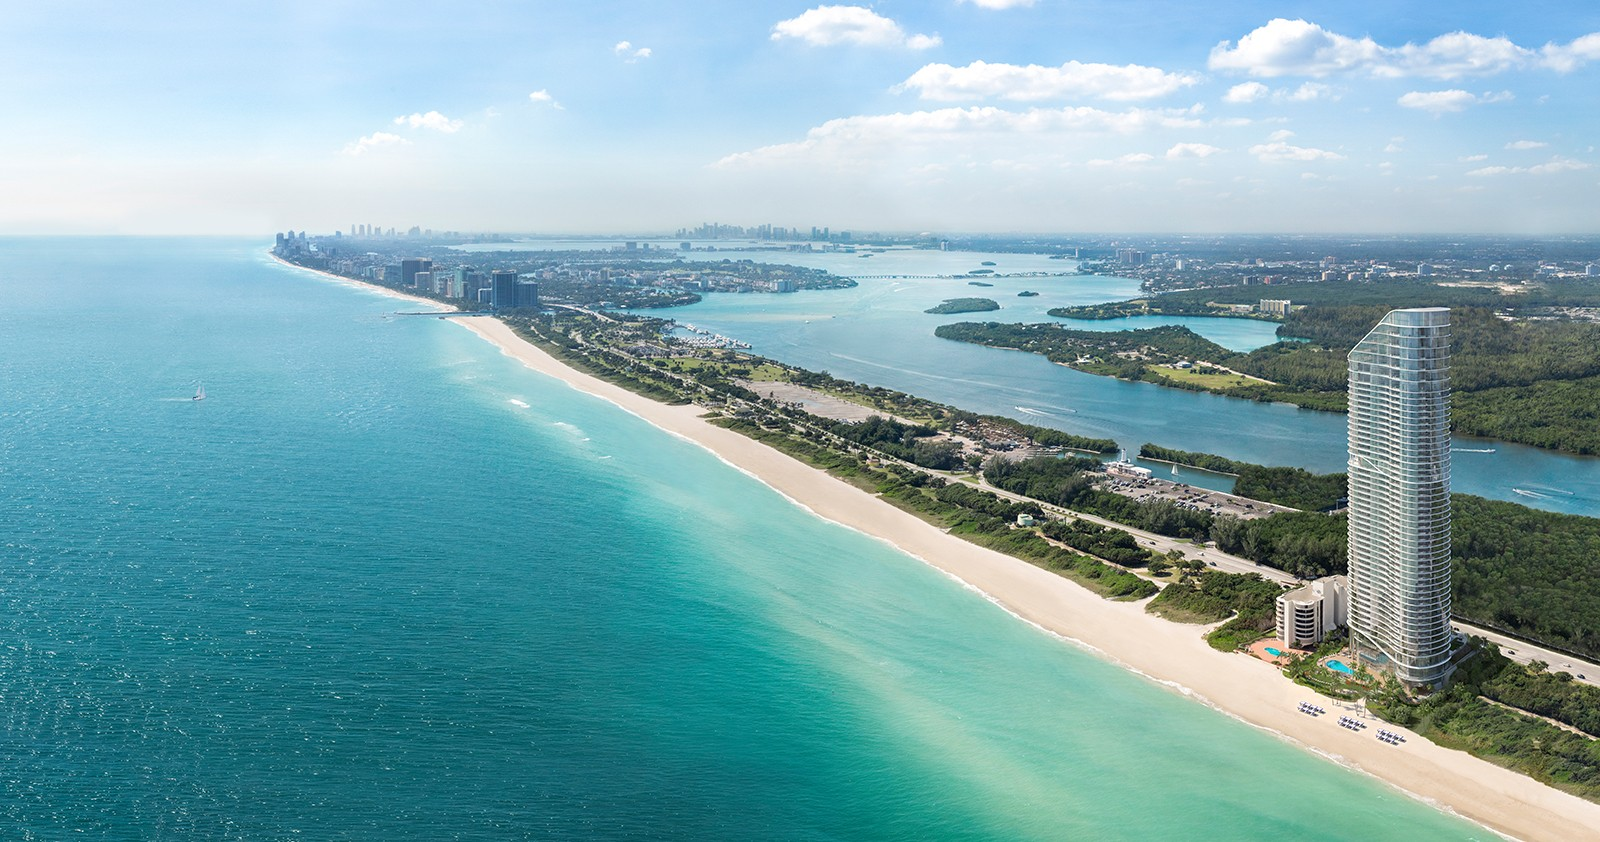 The Ritz-Carlton Residences, Sunny Isles Beach Passes Halfway Point With Expected Completion 2019